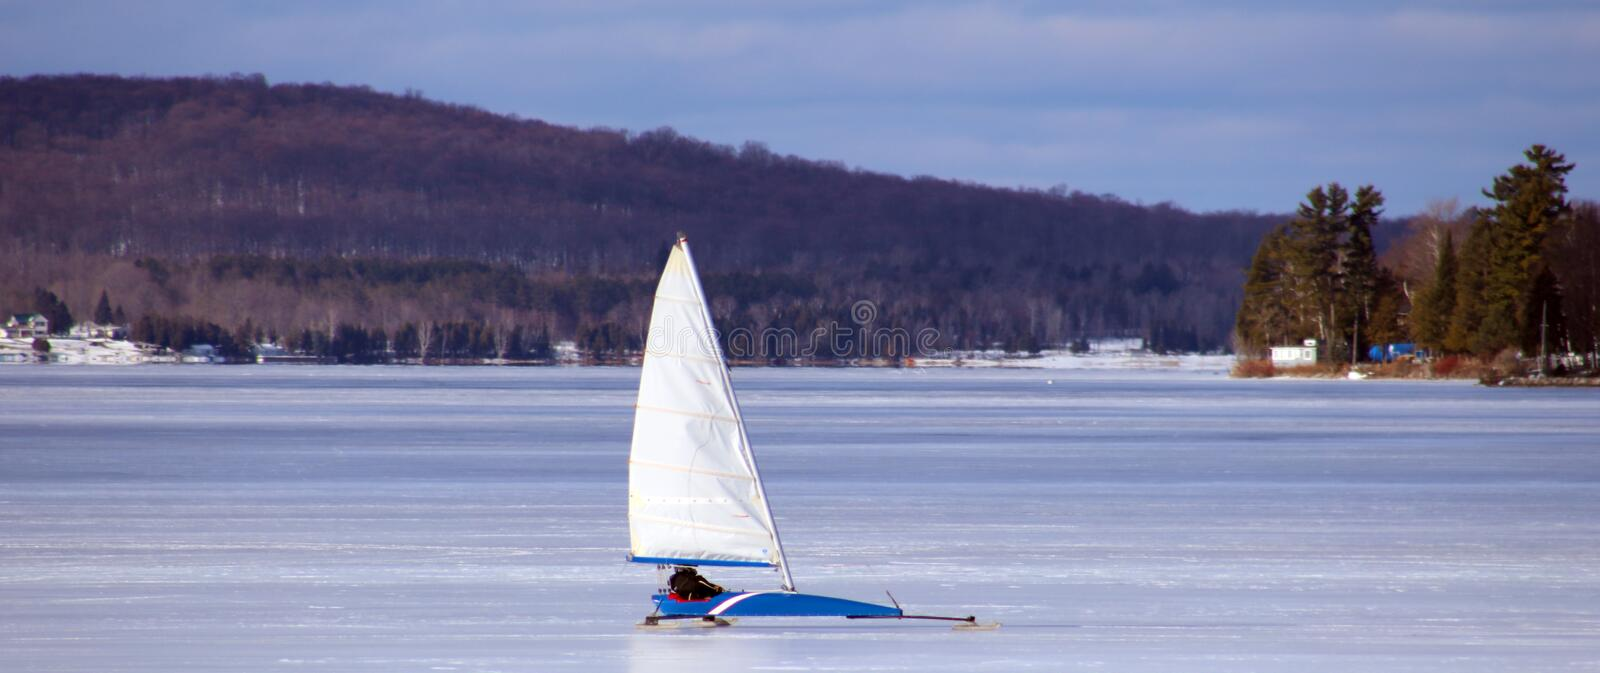 Ice sailing in froze lake in north Michigan during winter stock photo